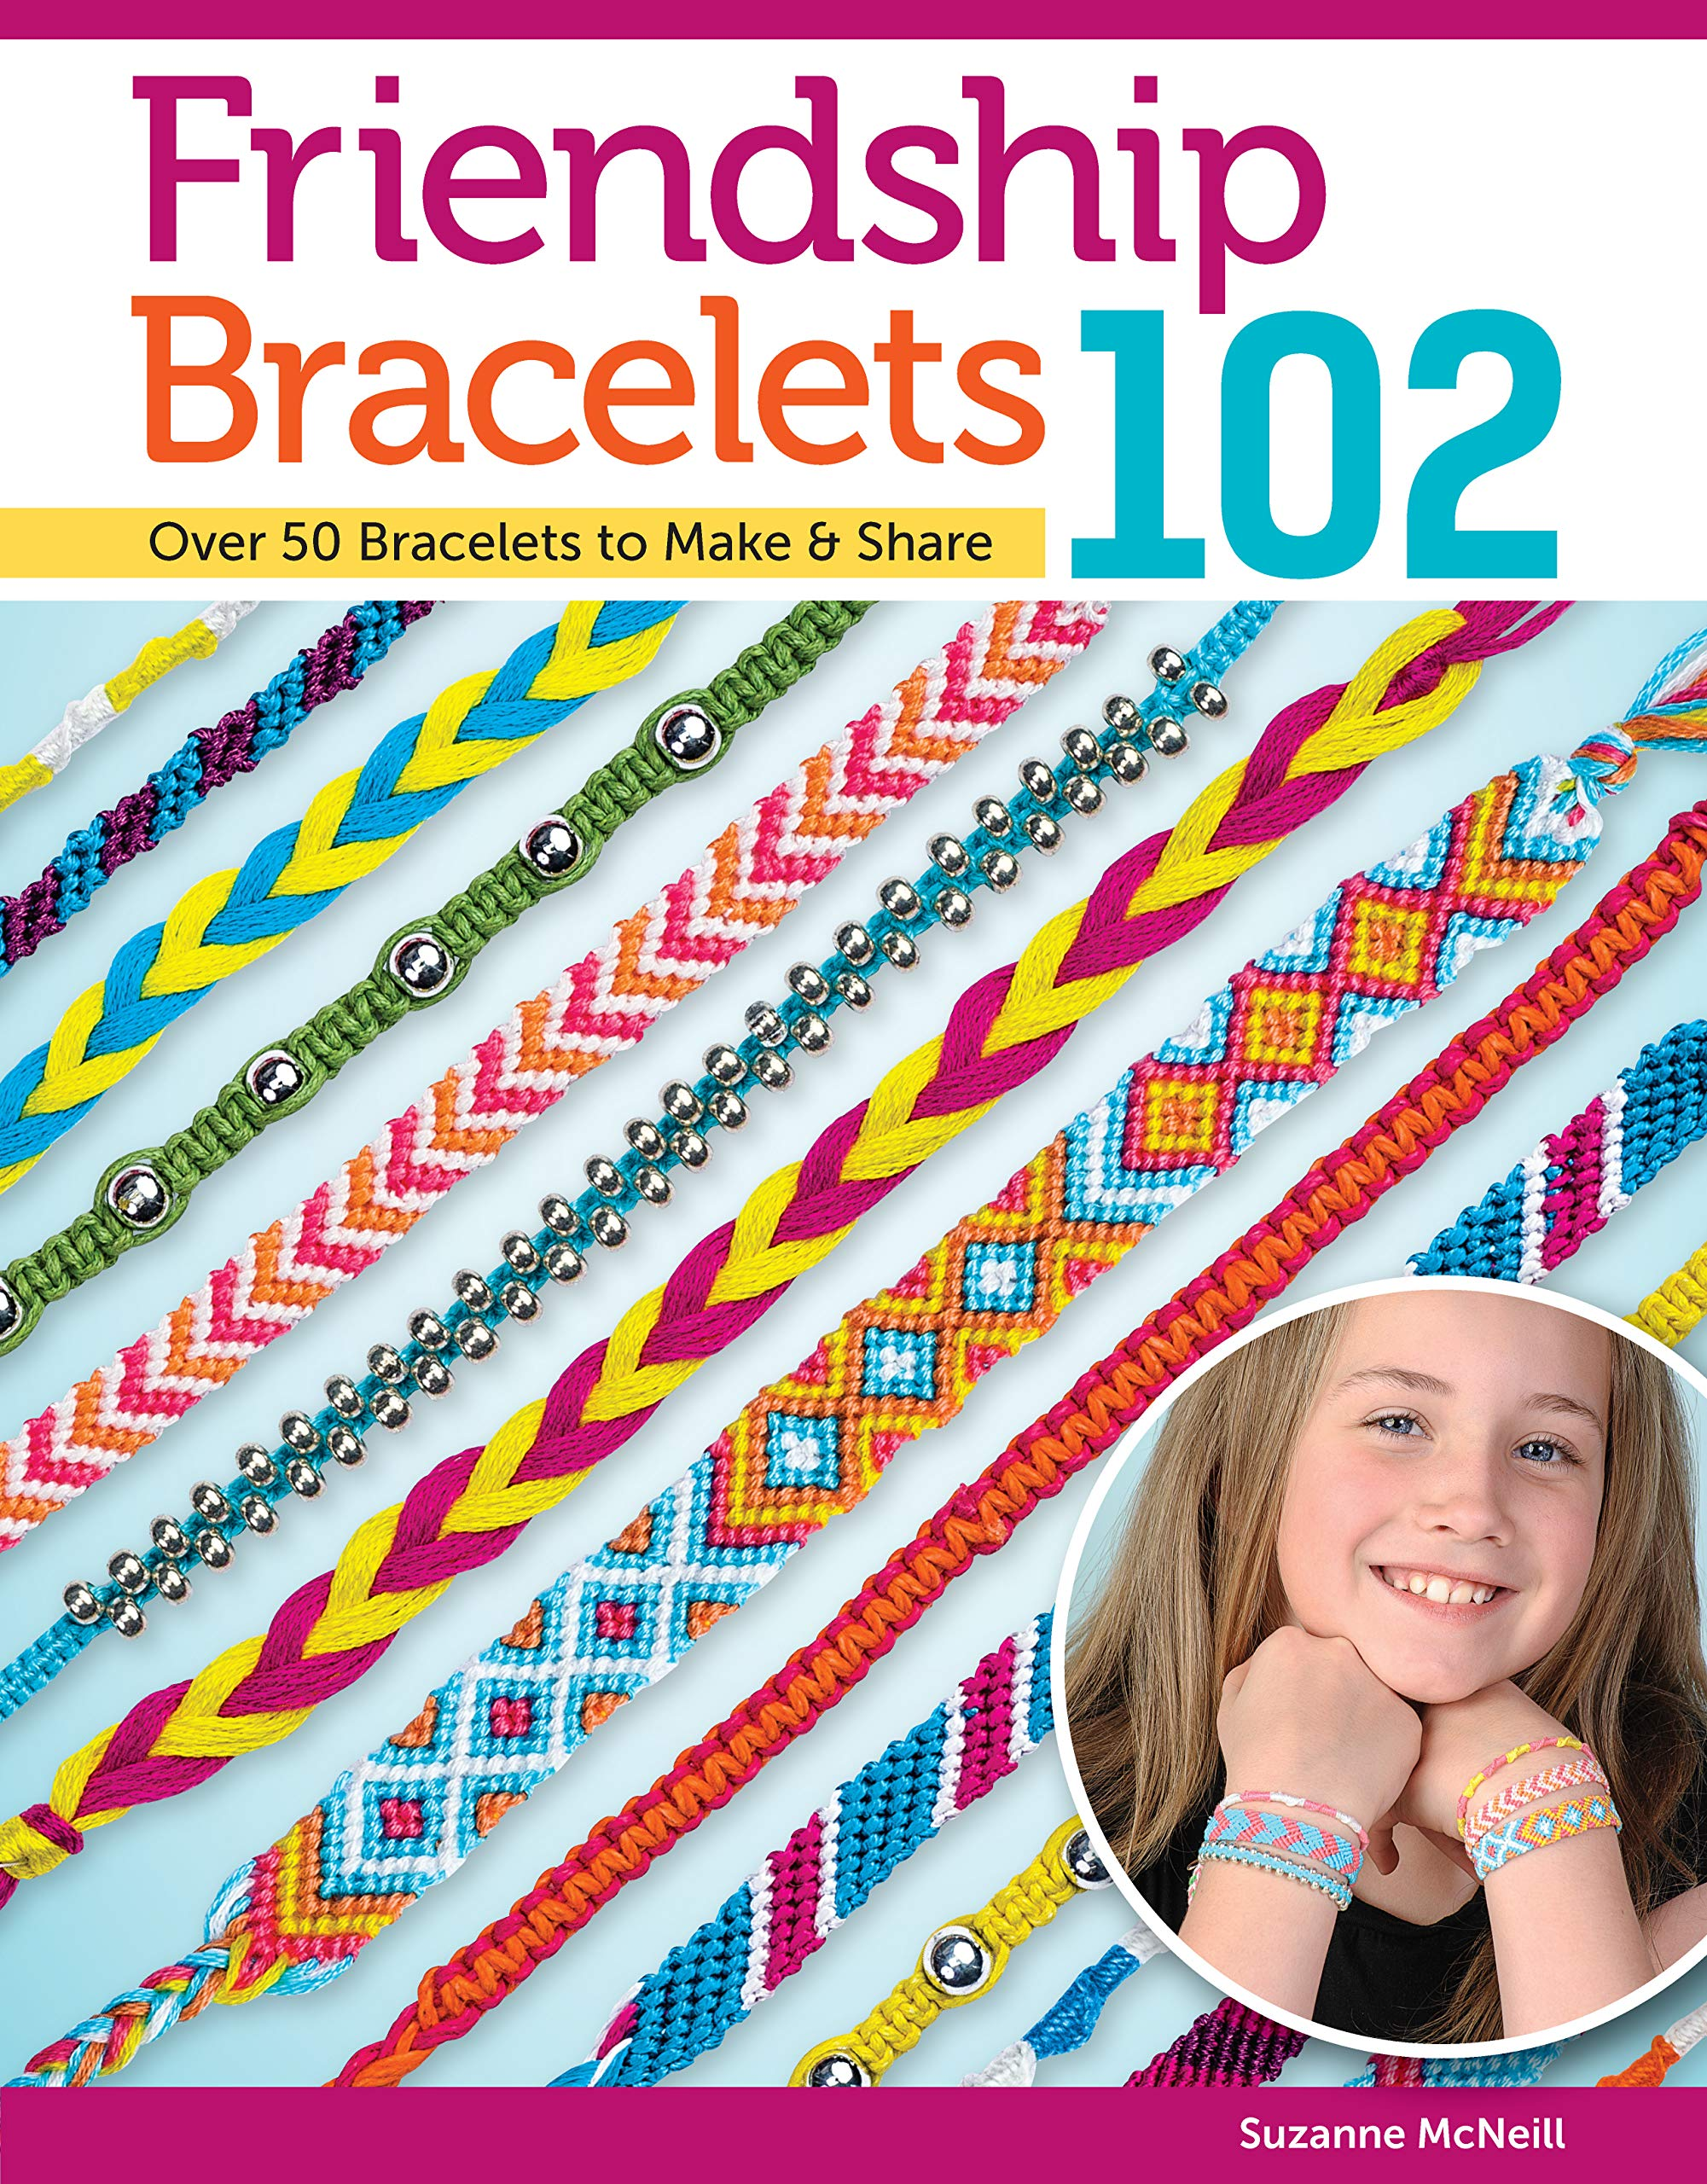 Friendship Bracelets 102 Over 50 Bracelets To Make Share Design Originals Easy Instructions For Dozens Of Designs And Variations Braiding Knotting Stripes Diamonds Waves And More Mcneill Suzanne 9781574212945 Amazon Com Books